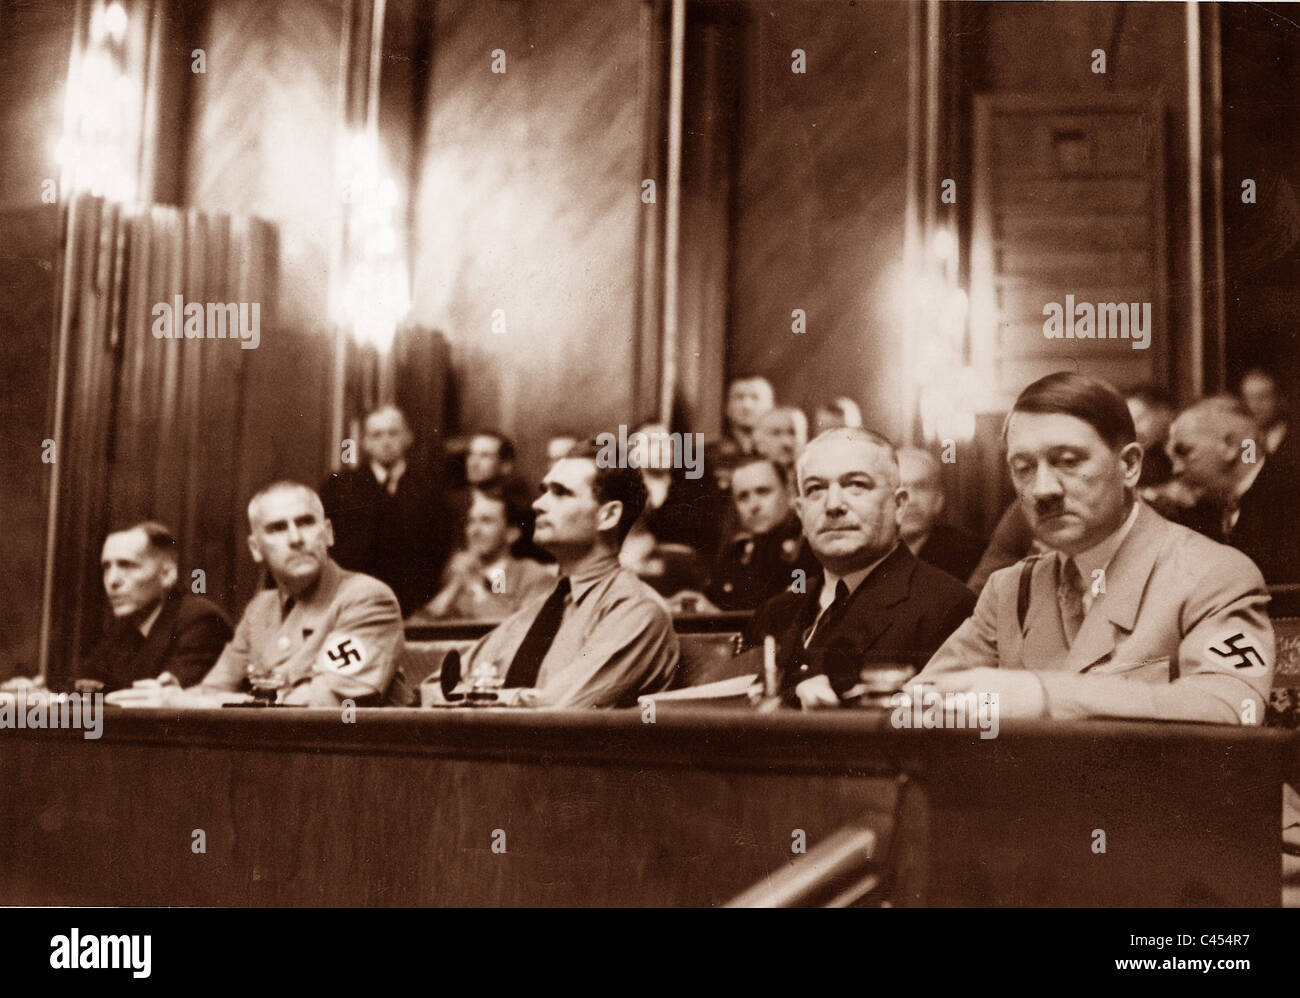 Hitler with members of his Government in the Reichstag, 1934 - Stock Image